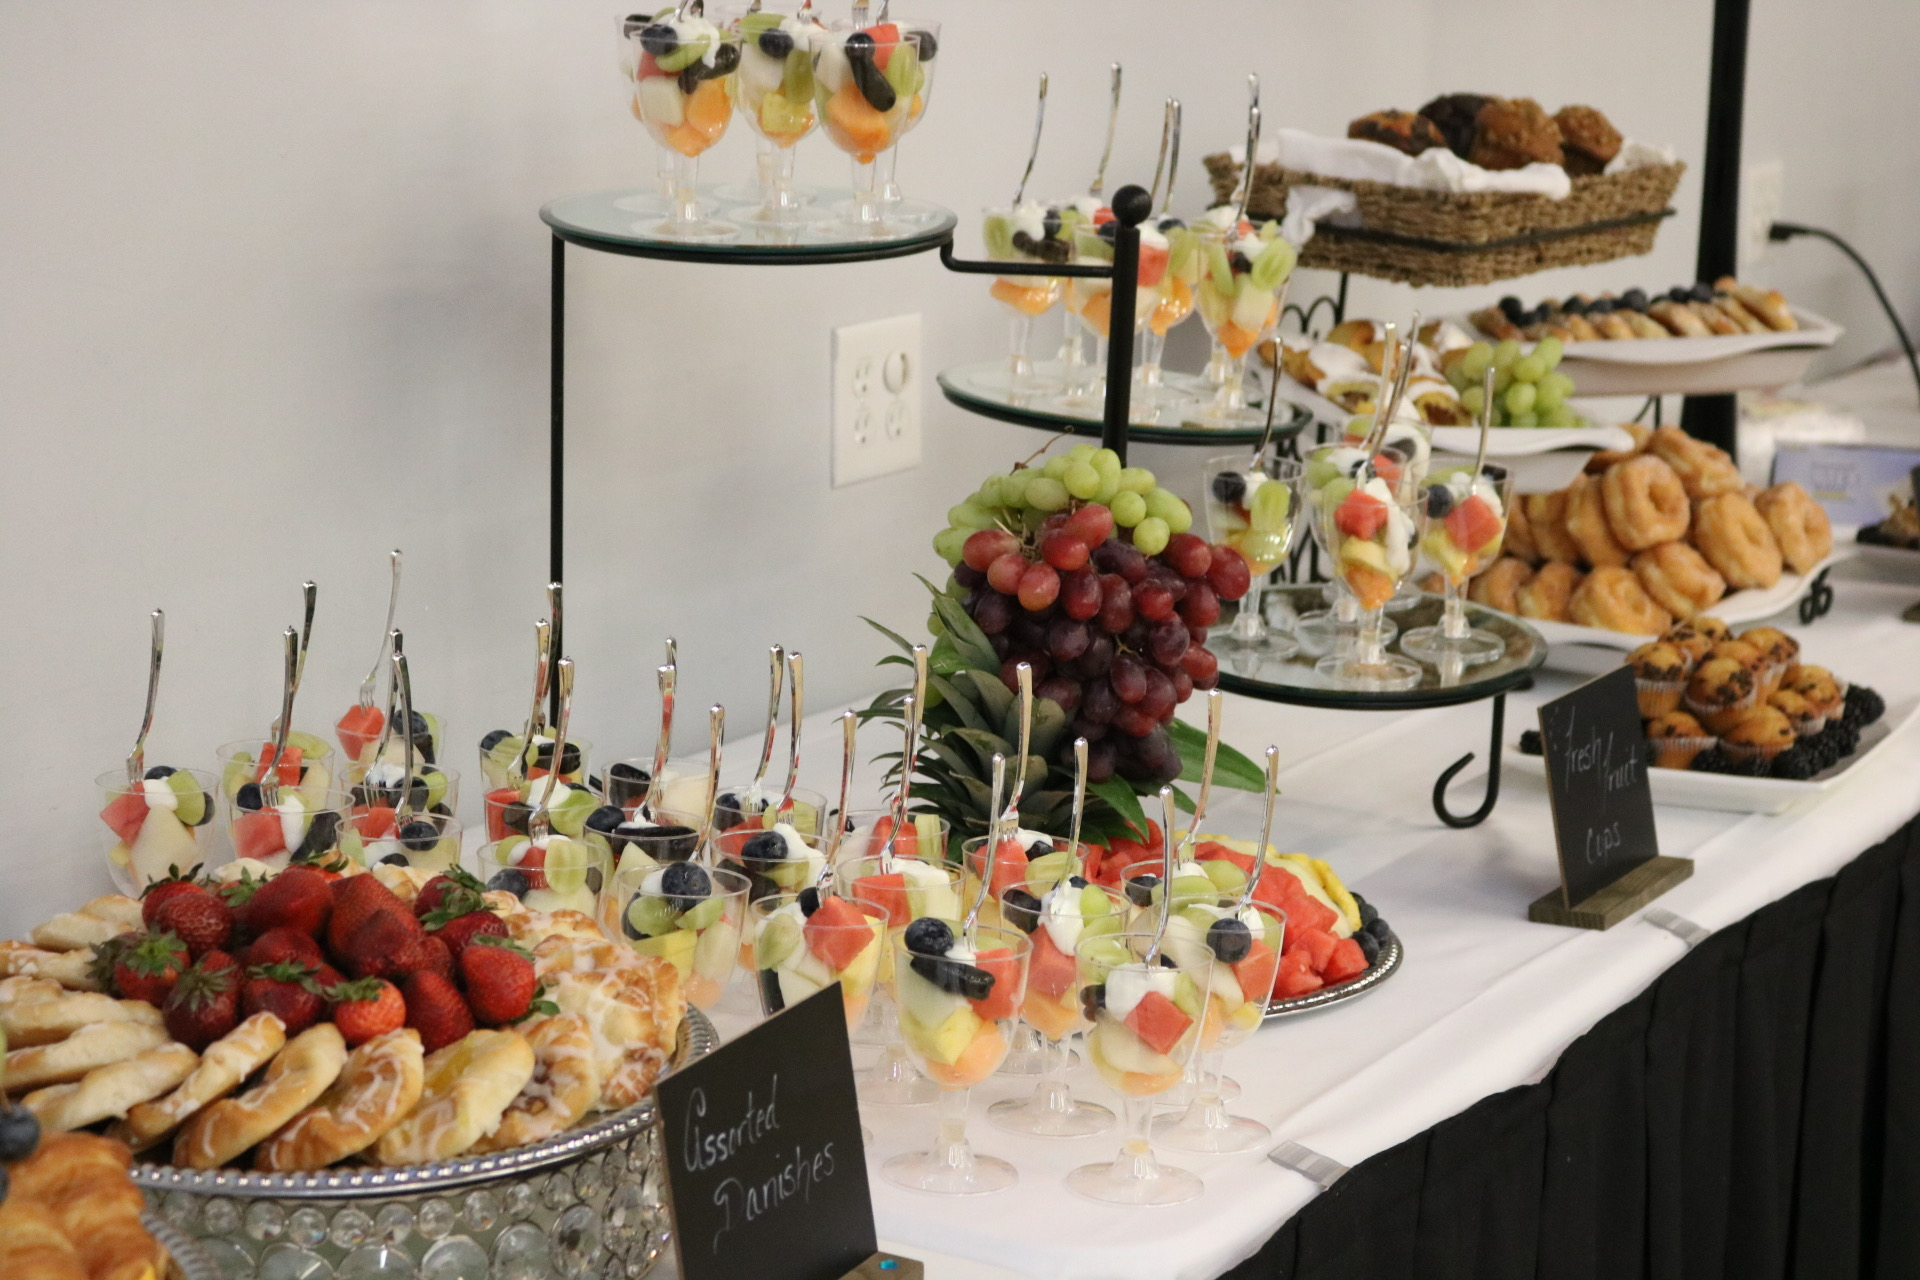 Breakfast set up for corporate clients catering services